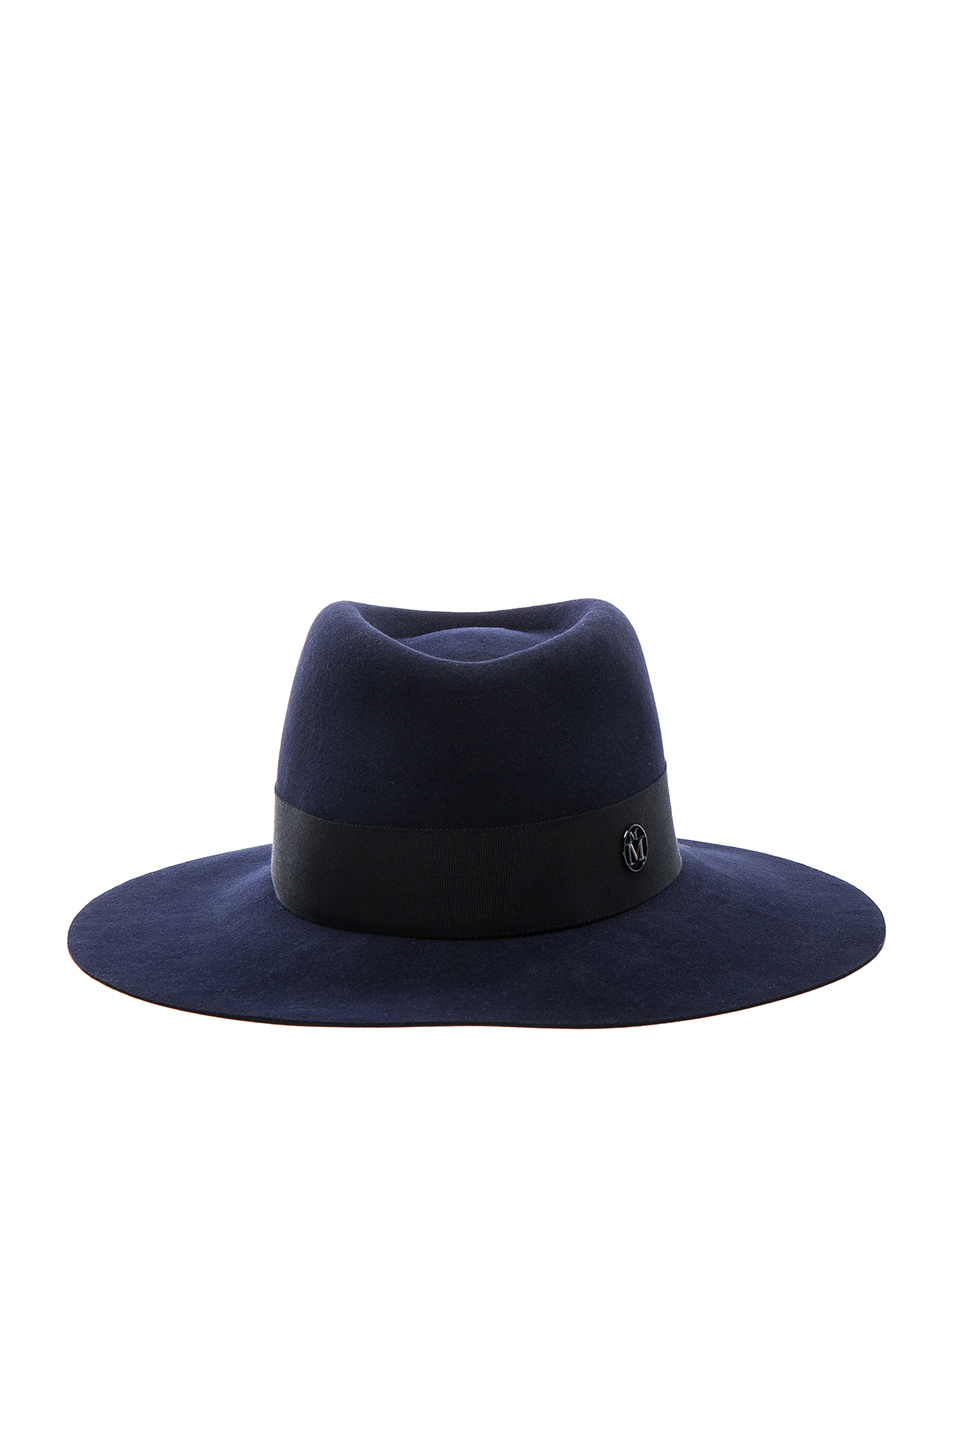 Maison michel charles hat in blue lyst for Maison michel